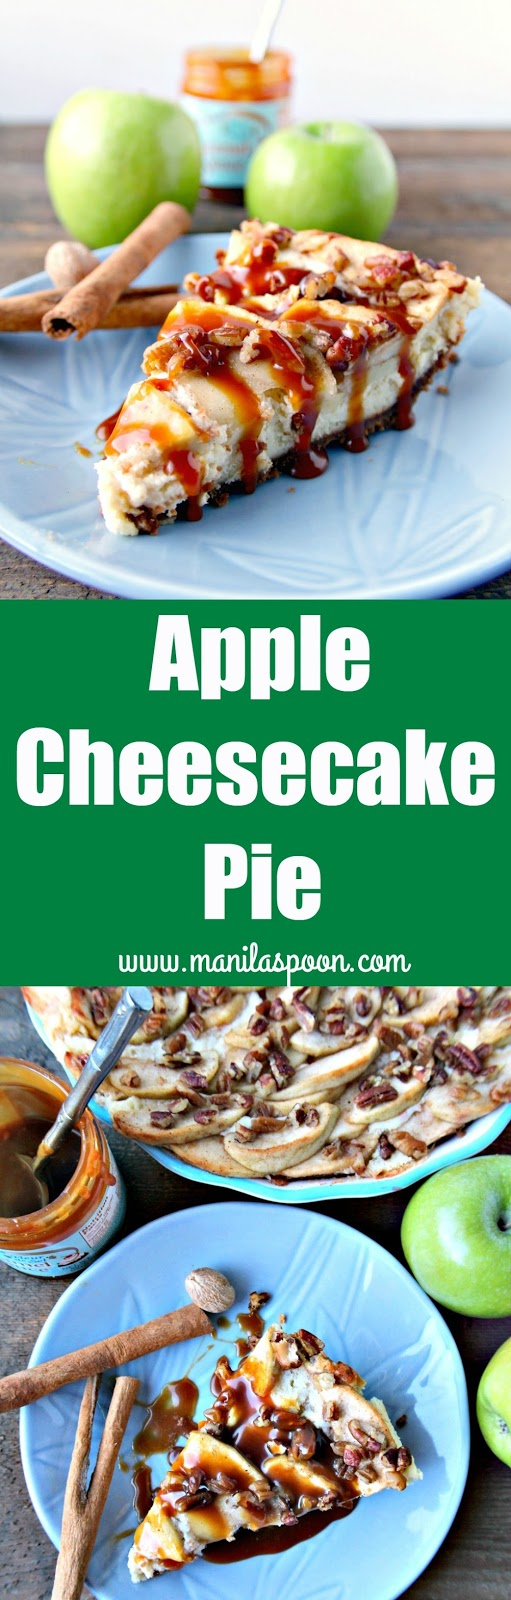 This easy and luscious fruity dessert combines the flavors of Apple Pie and Cheesecake so you can enjoy both! Make it ahead for fuss-free entertaining. Drizzle some caramel sauce on top for extra yum! | manilaspoon.com